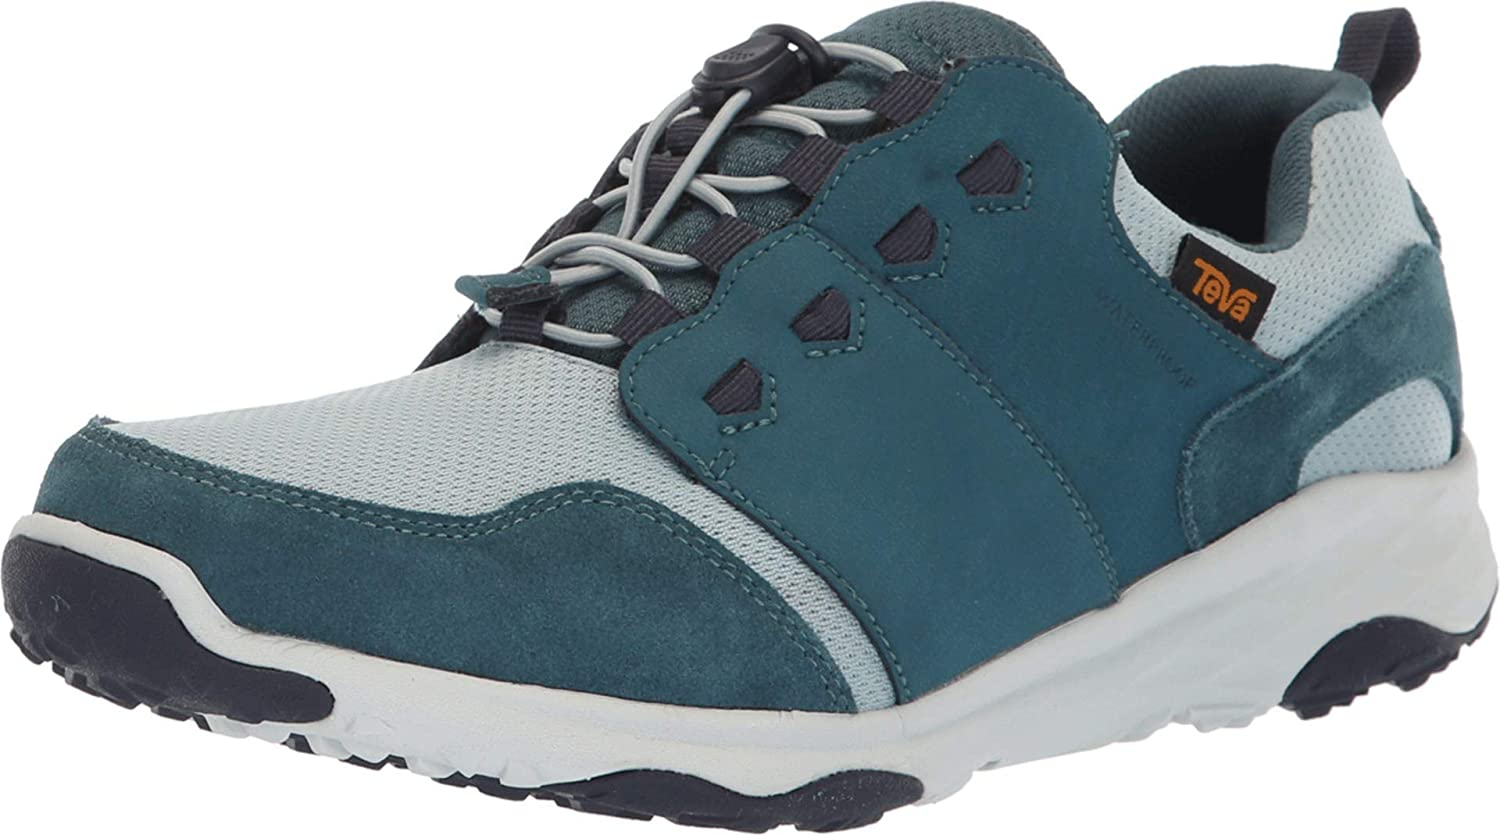 Teva Kids Arrowood 2 Low Wp Hiking Shoe